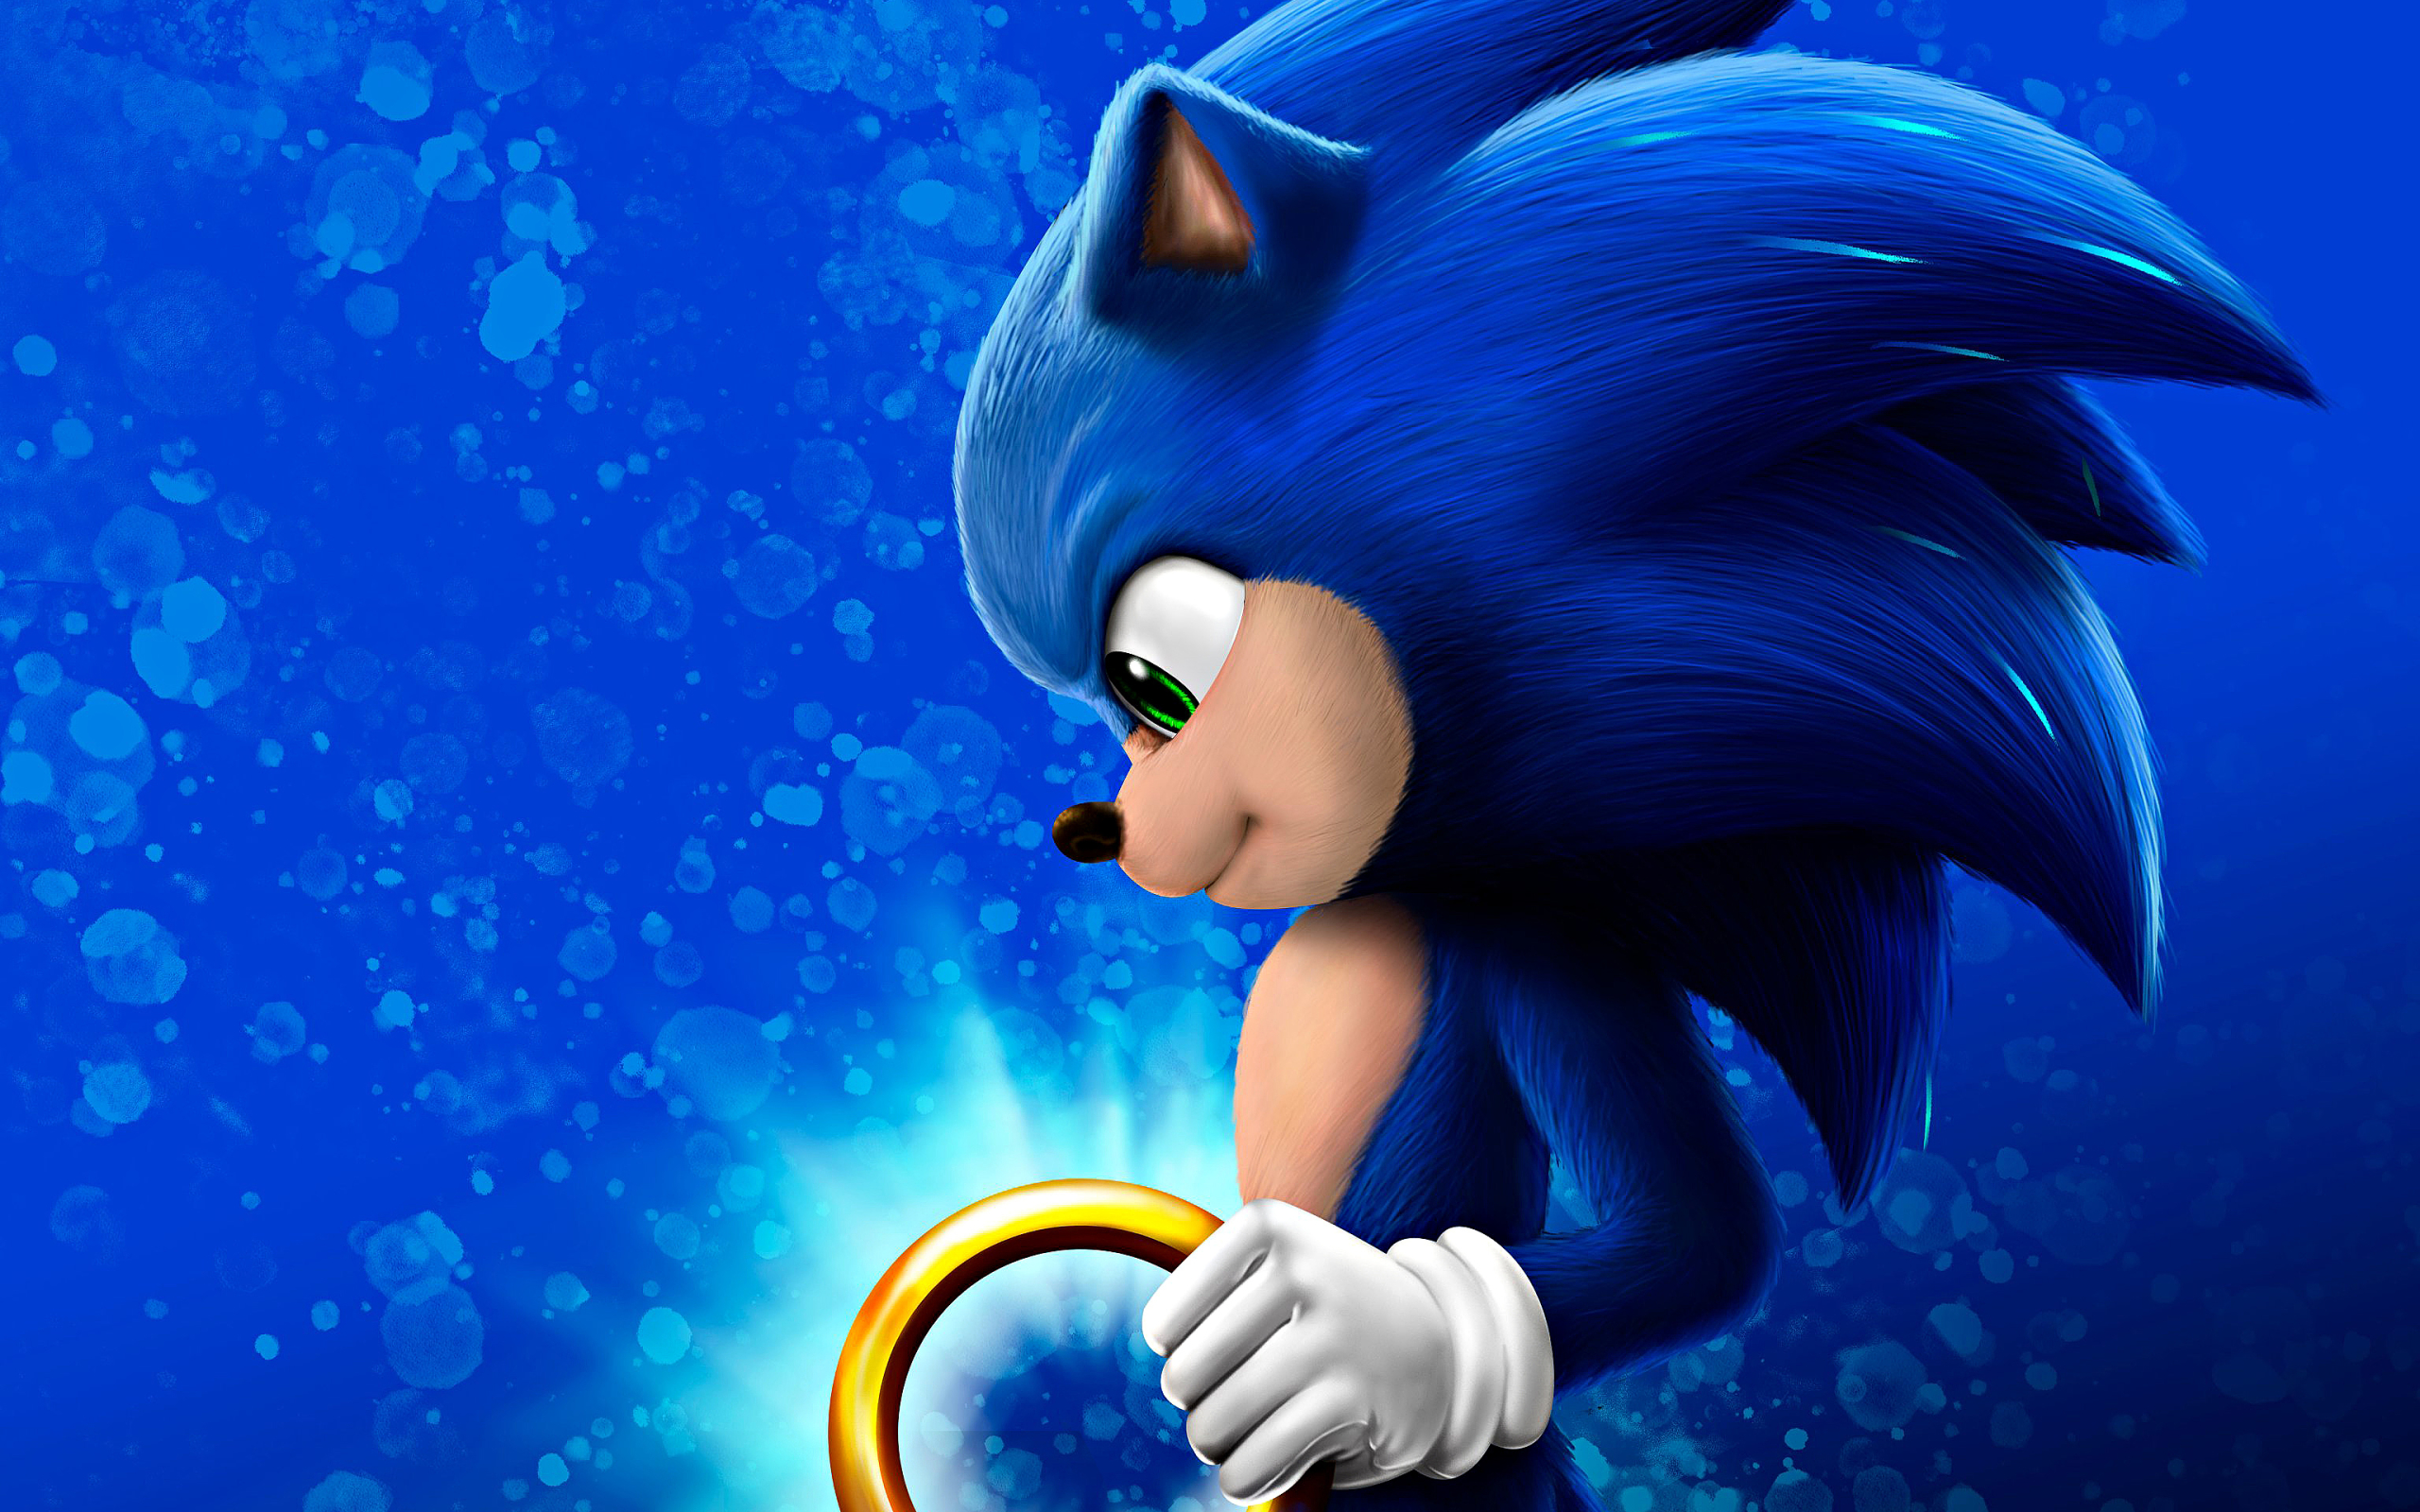 2560x1600 New Sonic Hedgehog 2560x1600 Resolution Wallpaper Hd Movies 4k Wallpapers Images Photos And Background